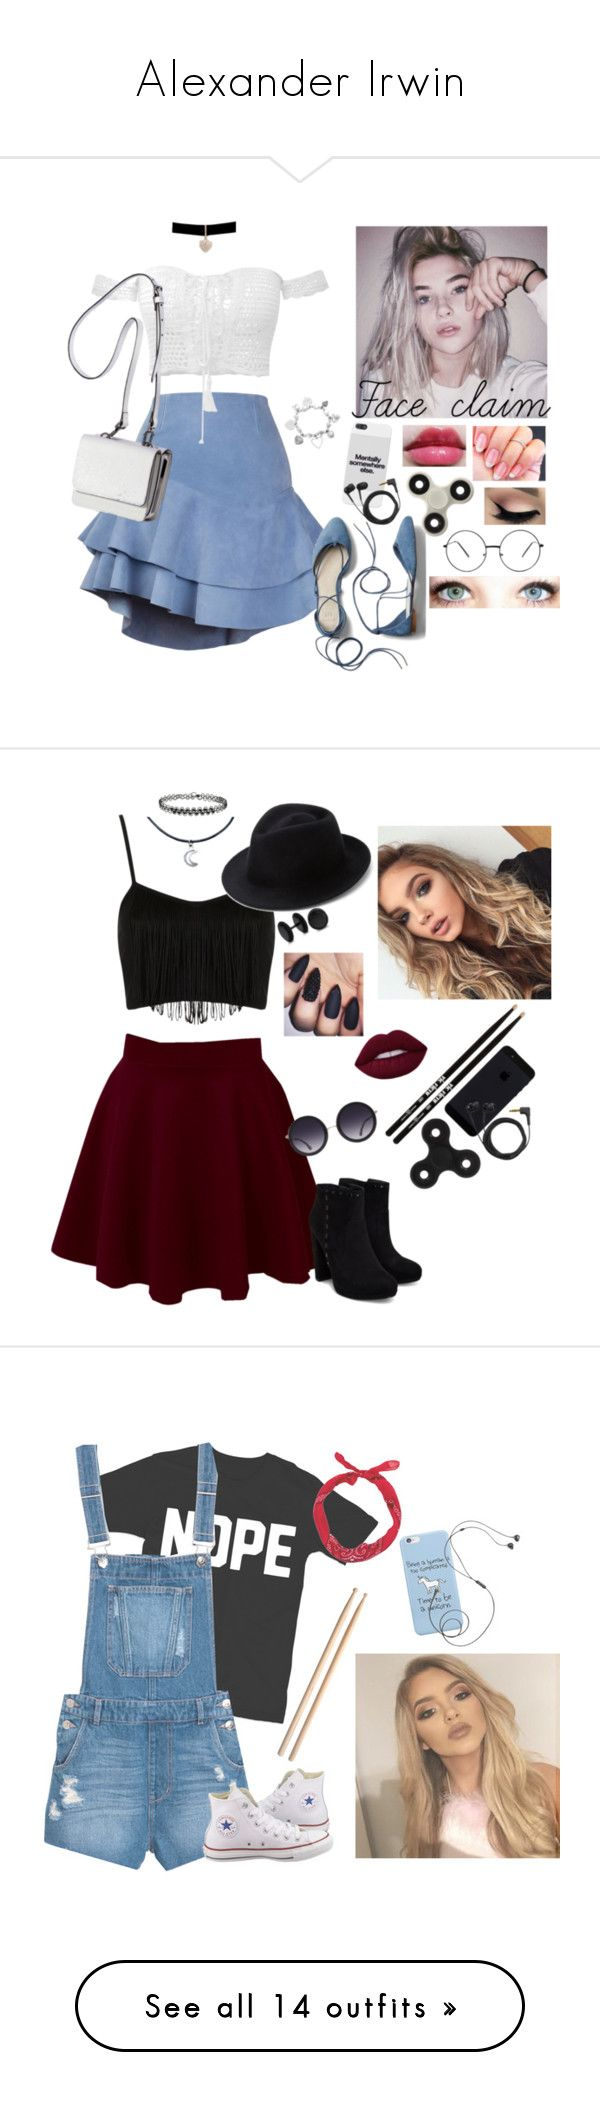 """""""Alexander Irwin"""" by r-e-n-0-g ❤ liked on Polyvore featuring KEEP ME, Siobhan Molloy, Gap, ChloBo, Betsey Johnson, Sennheiser, Monday, Revlon, Kendall + Kylie and Firth"""